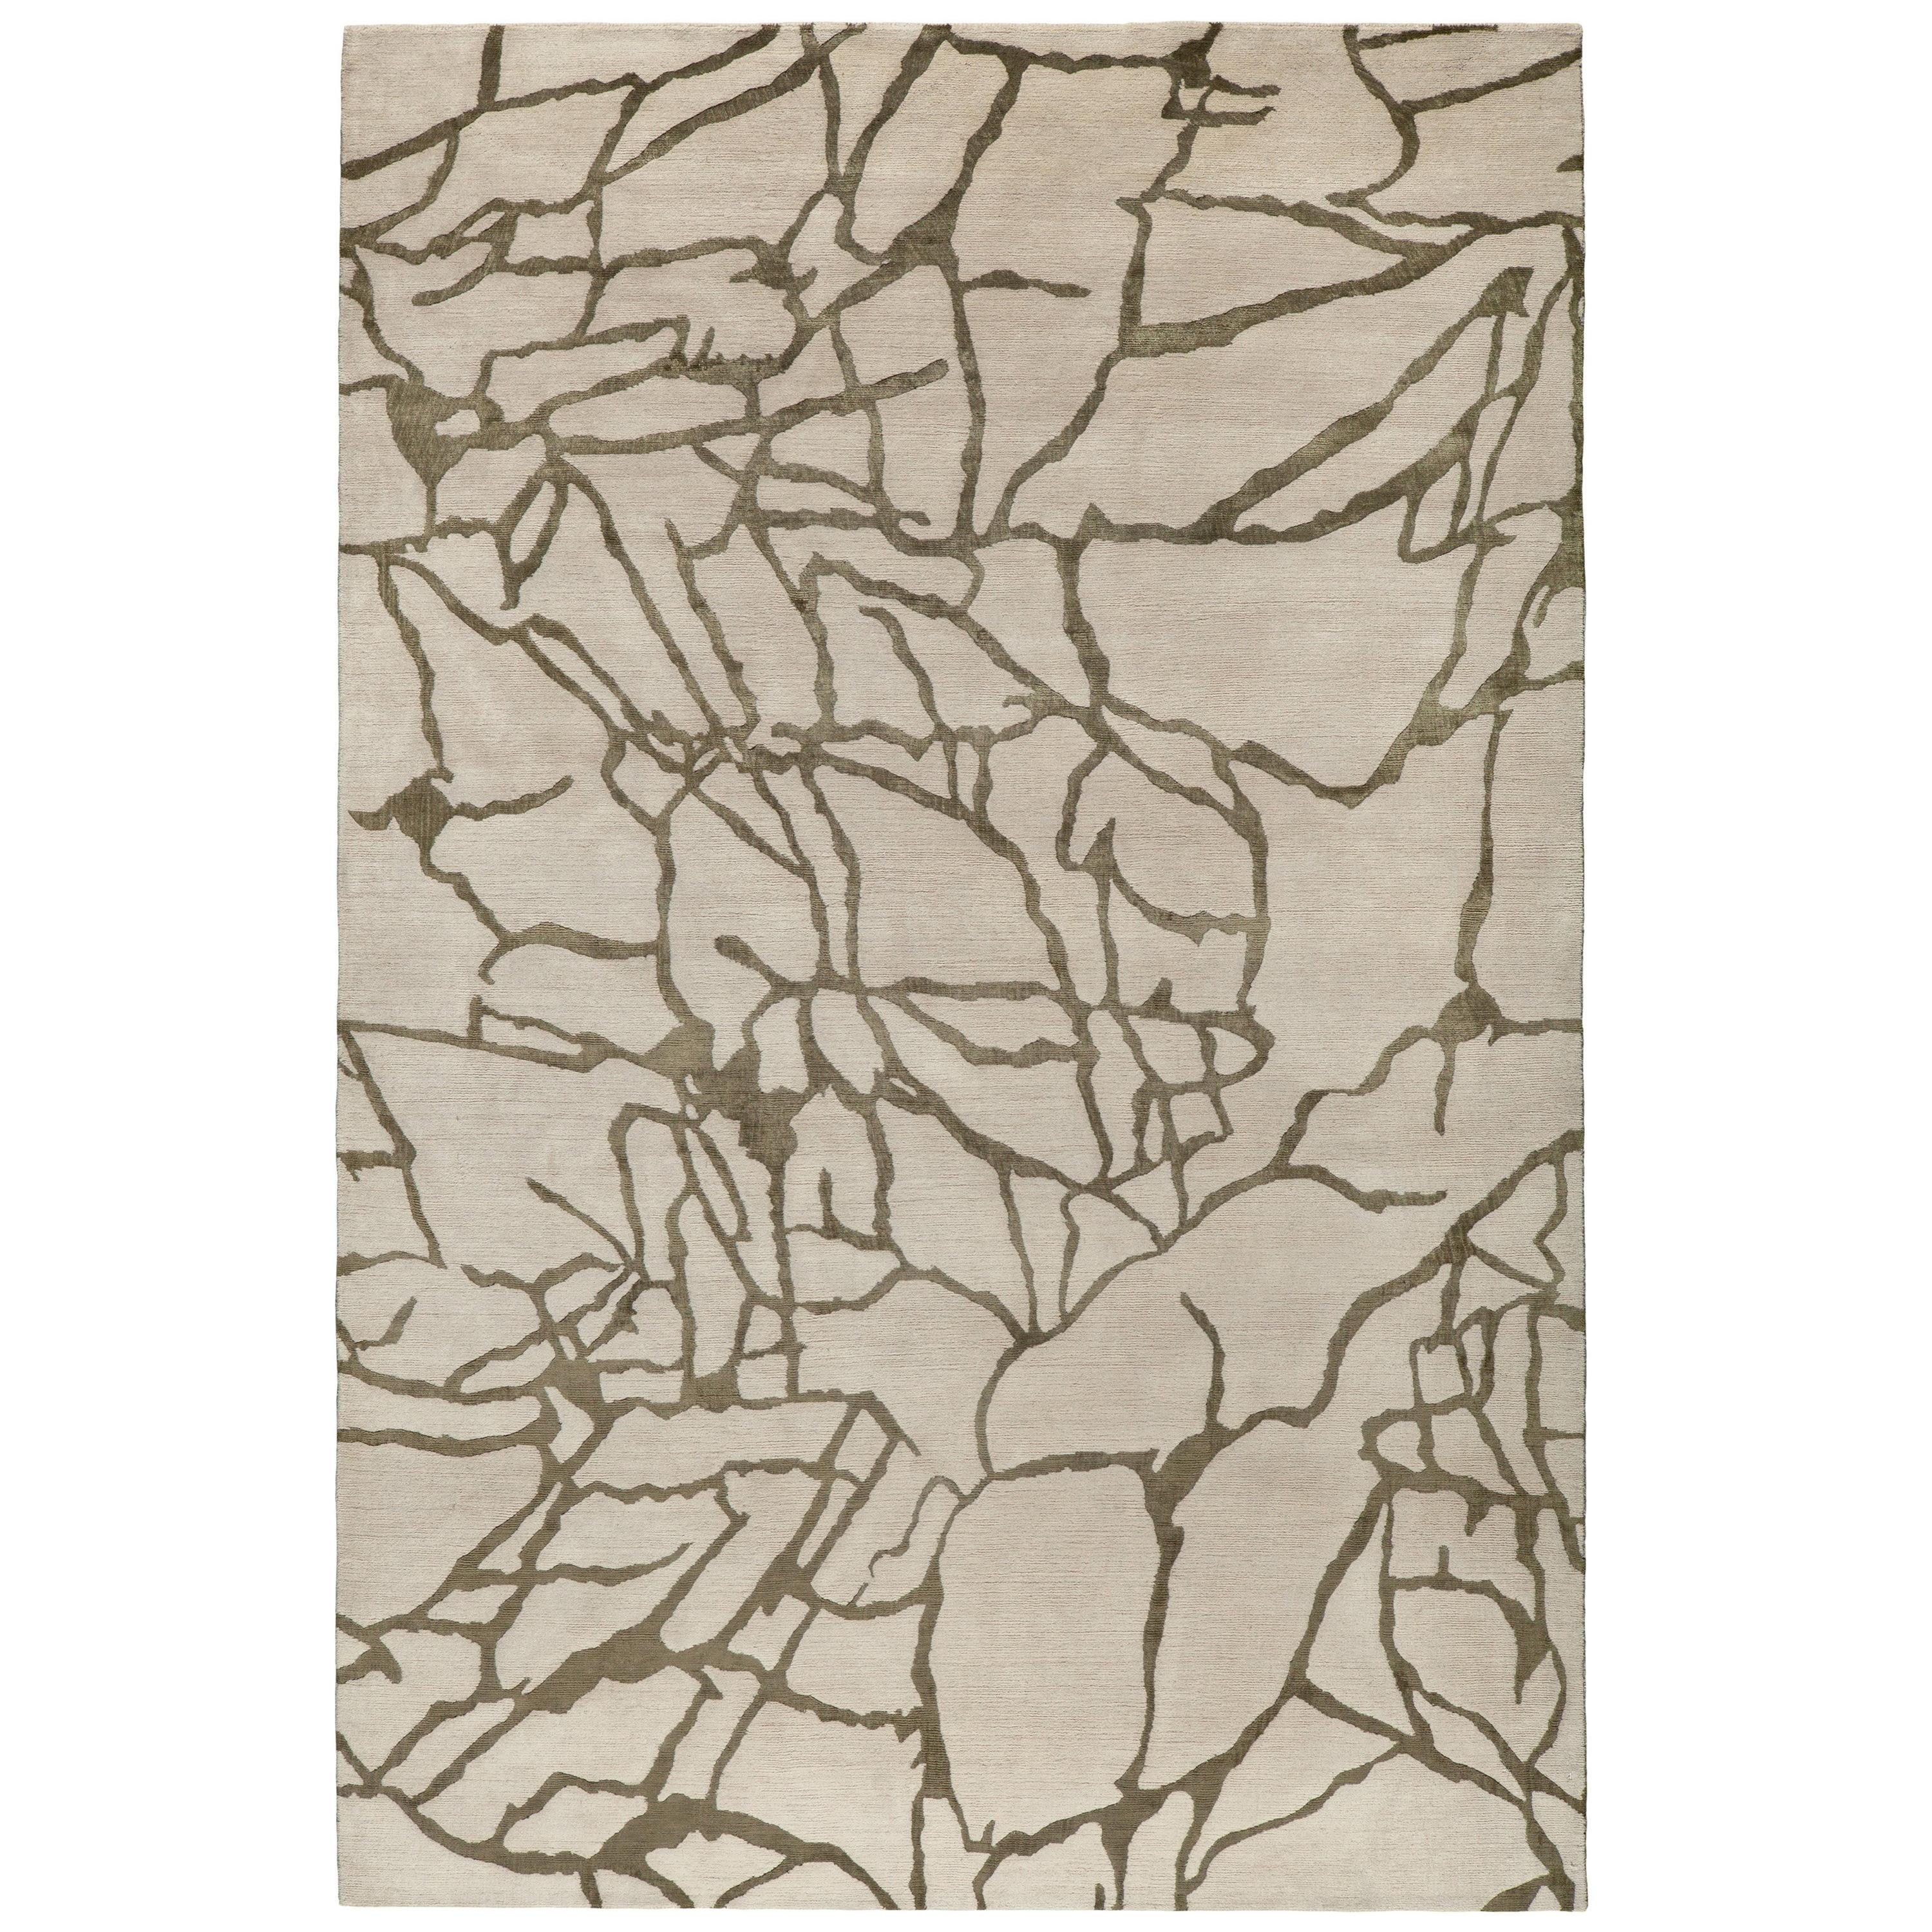 Tracery Hand-Knotted 10x8 Rug in Wool and Silk by Kelly Wearstler